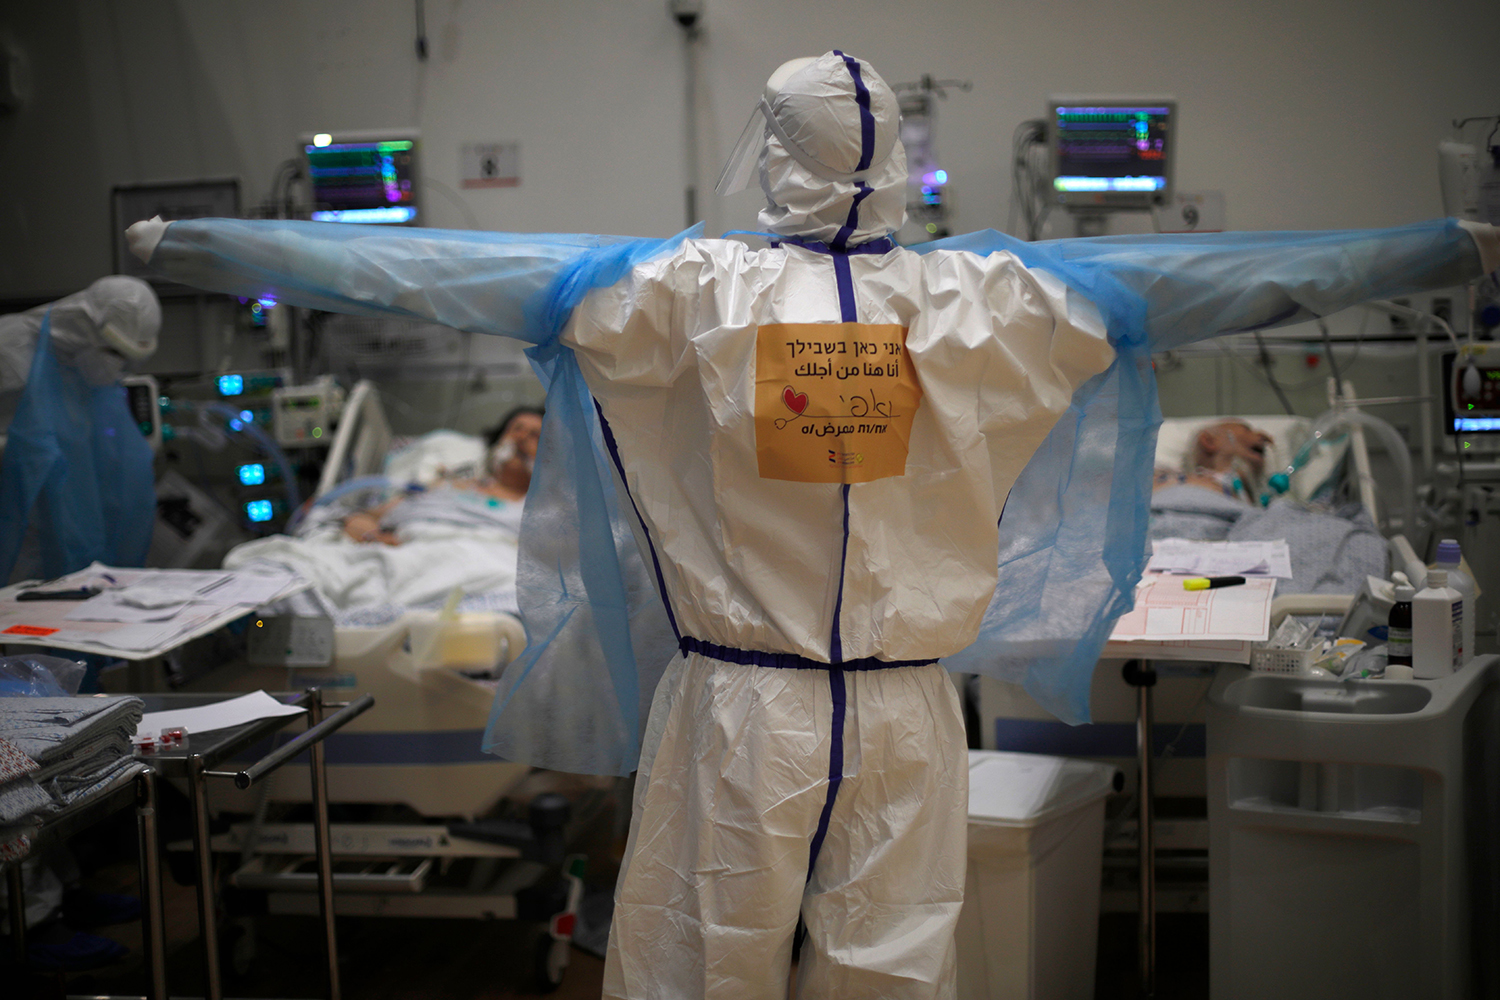 Medical personnel tend to COVID-19 patients in an isolation ward at the Ziv Medical Centre in Safed, Israel, on Feb. 2. JALAA MAREY/AFP via Getty Images